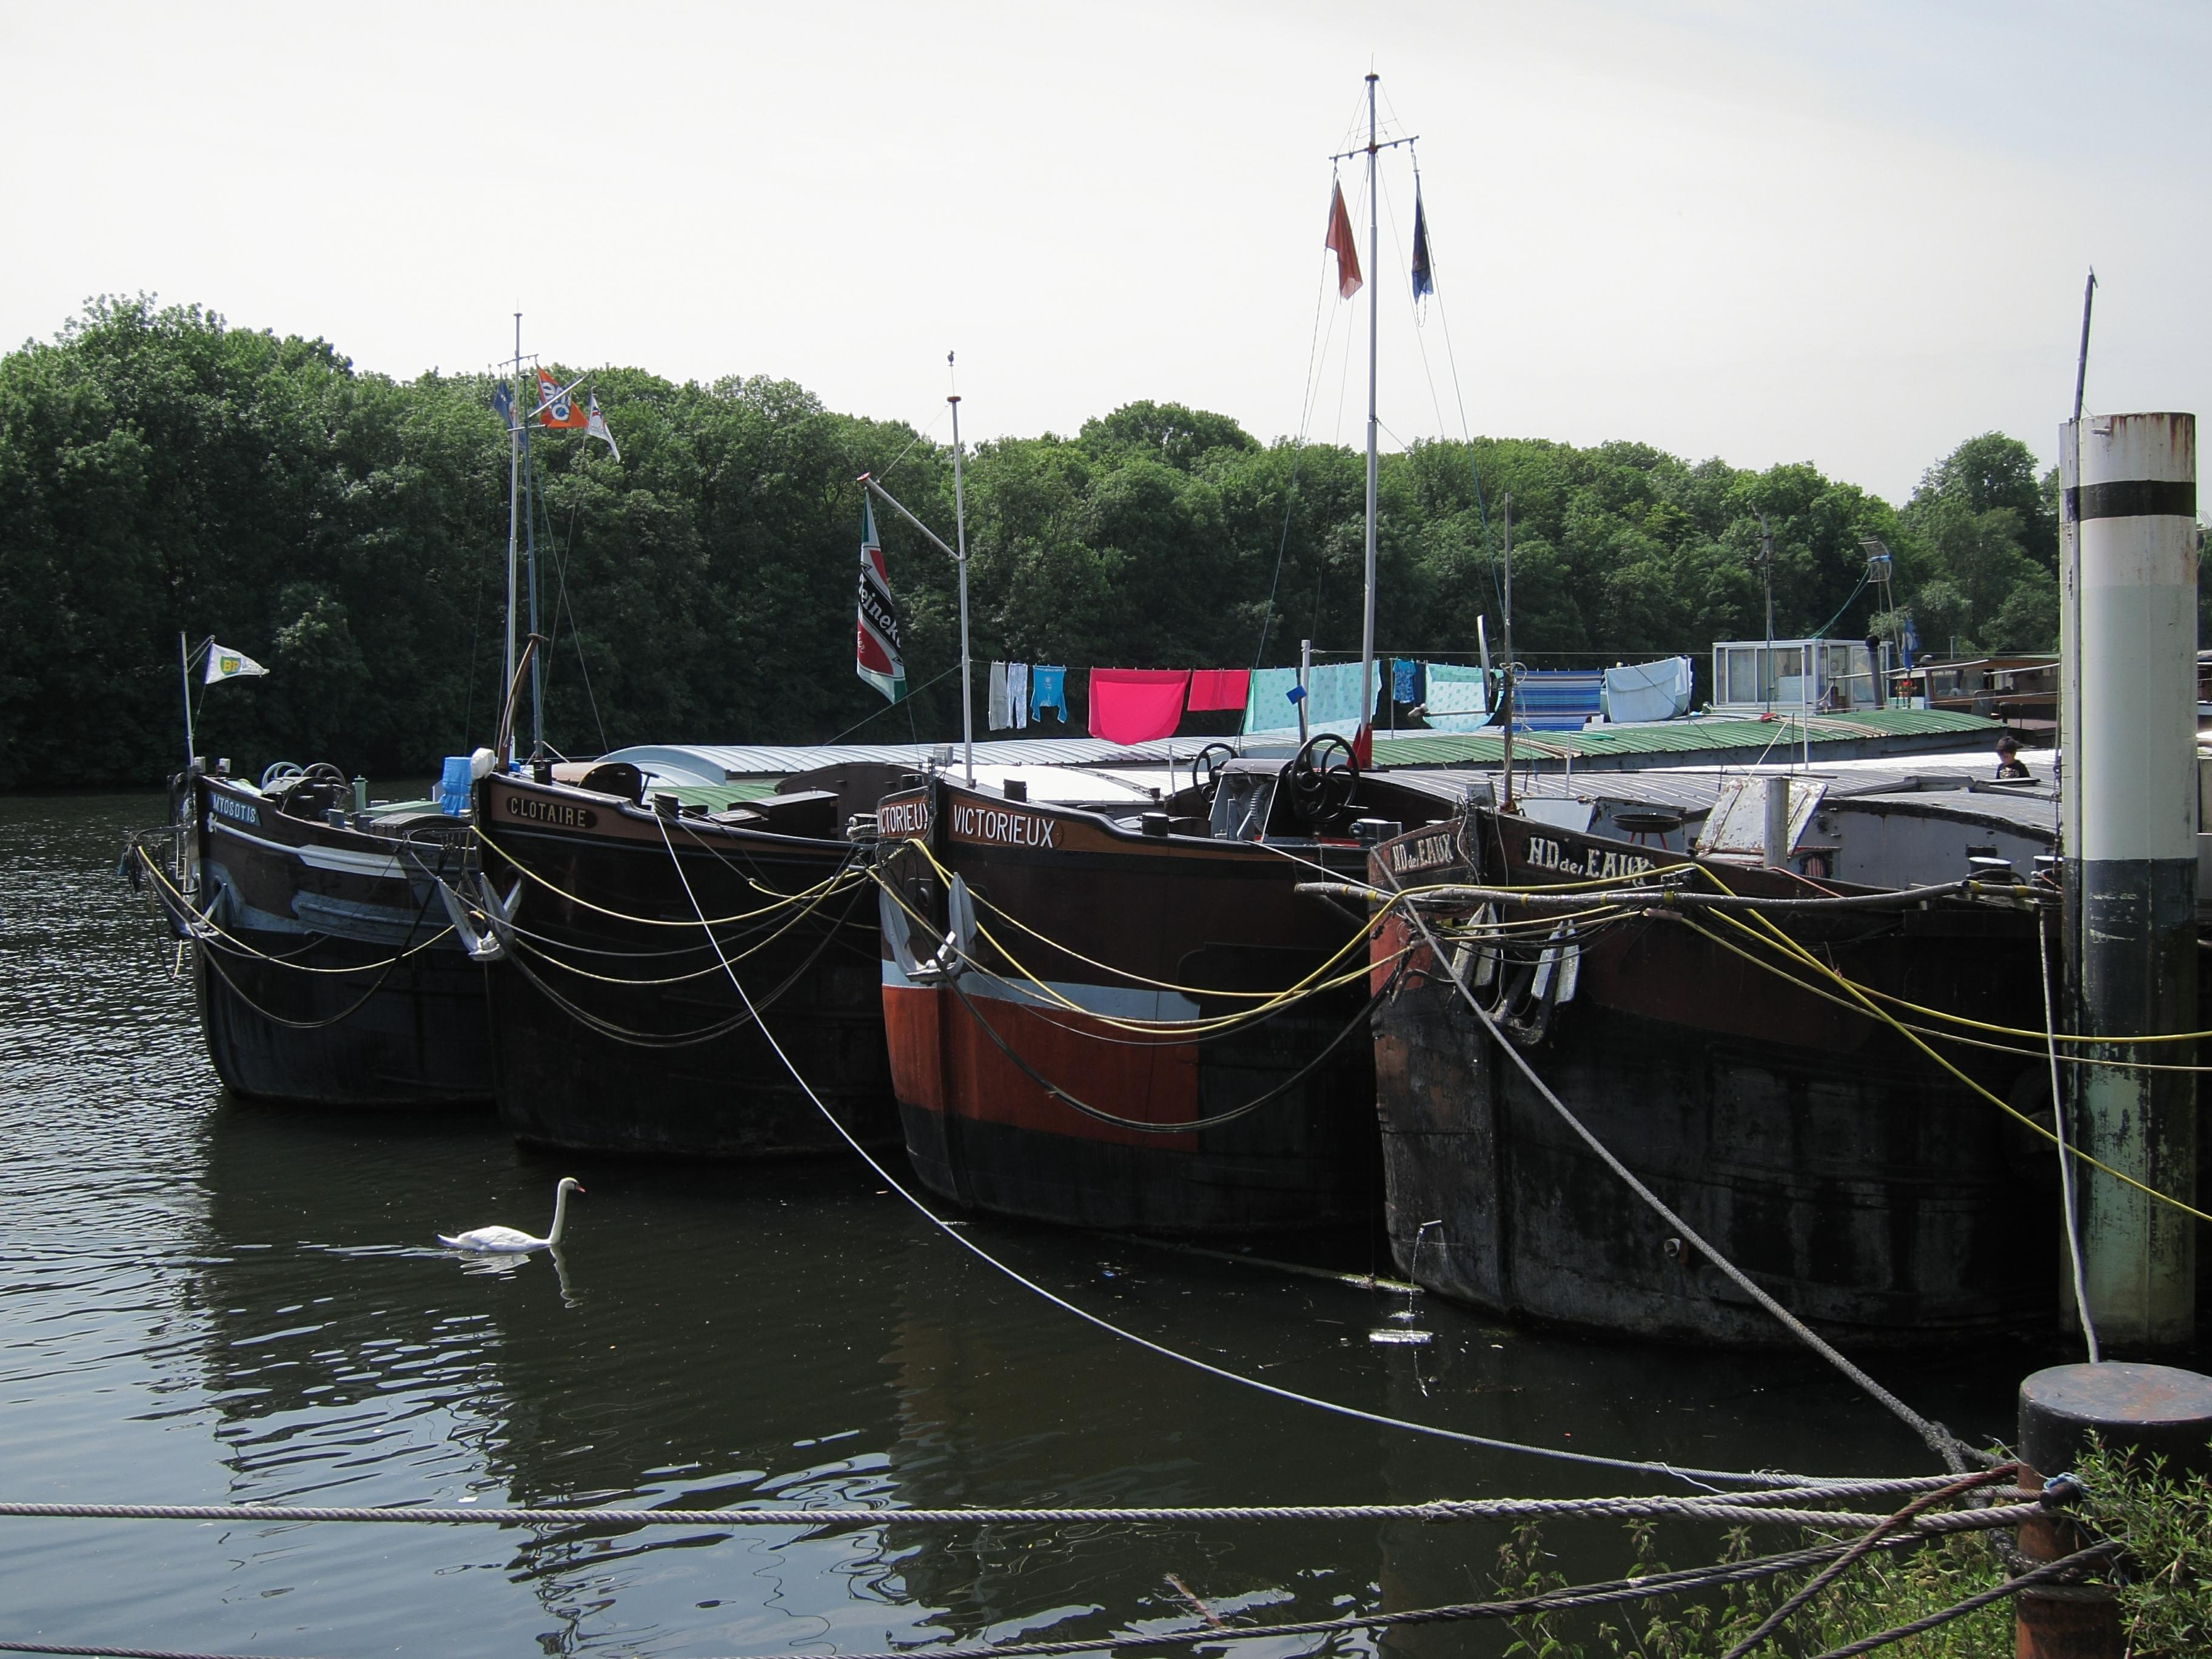 House barges in Conflans-Sainte-Honorine